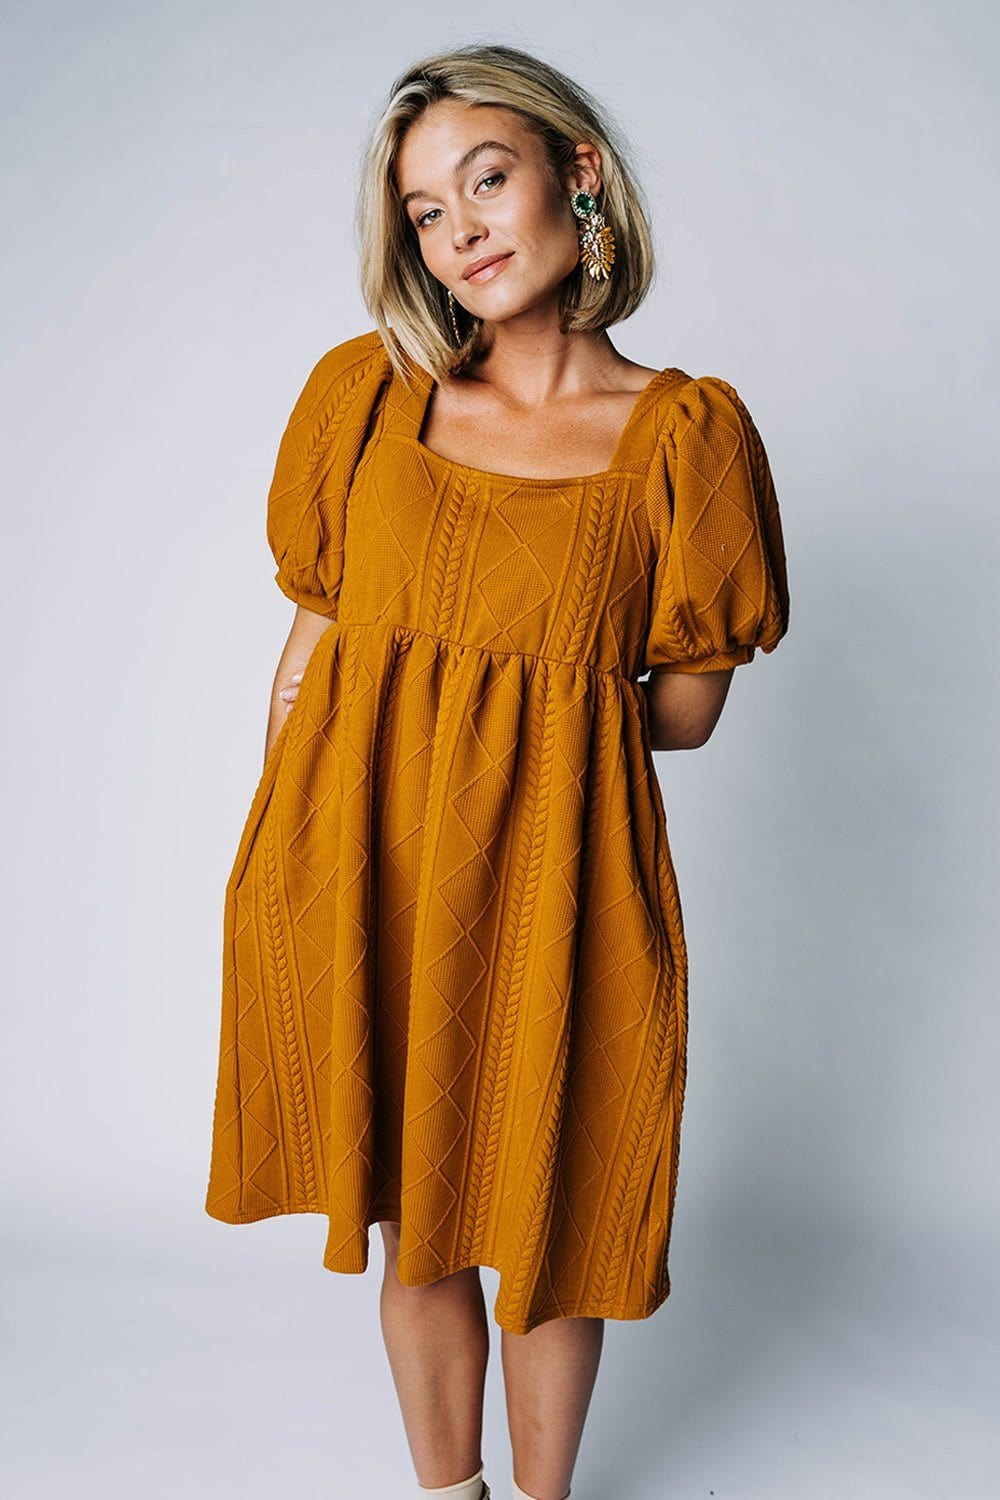 Happier With You Dress in Butterscotch, cladandcloth, Listicle.